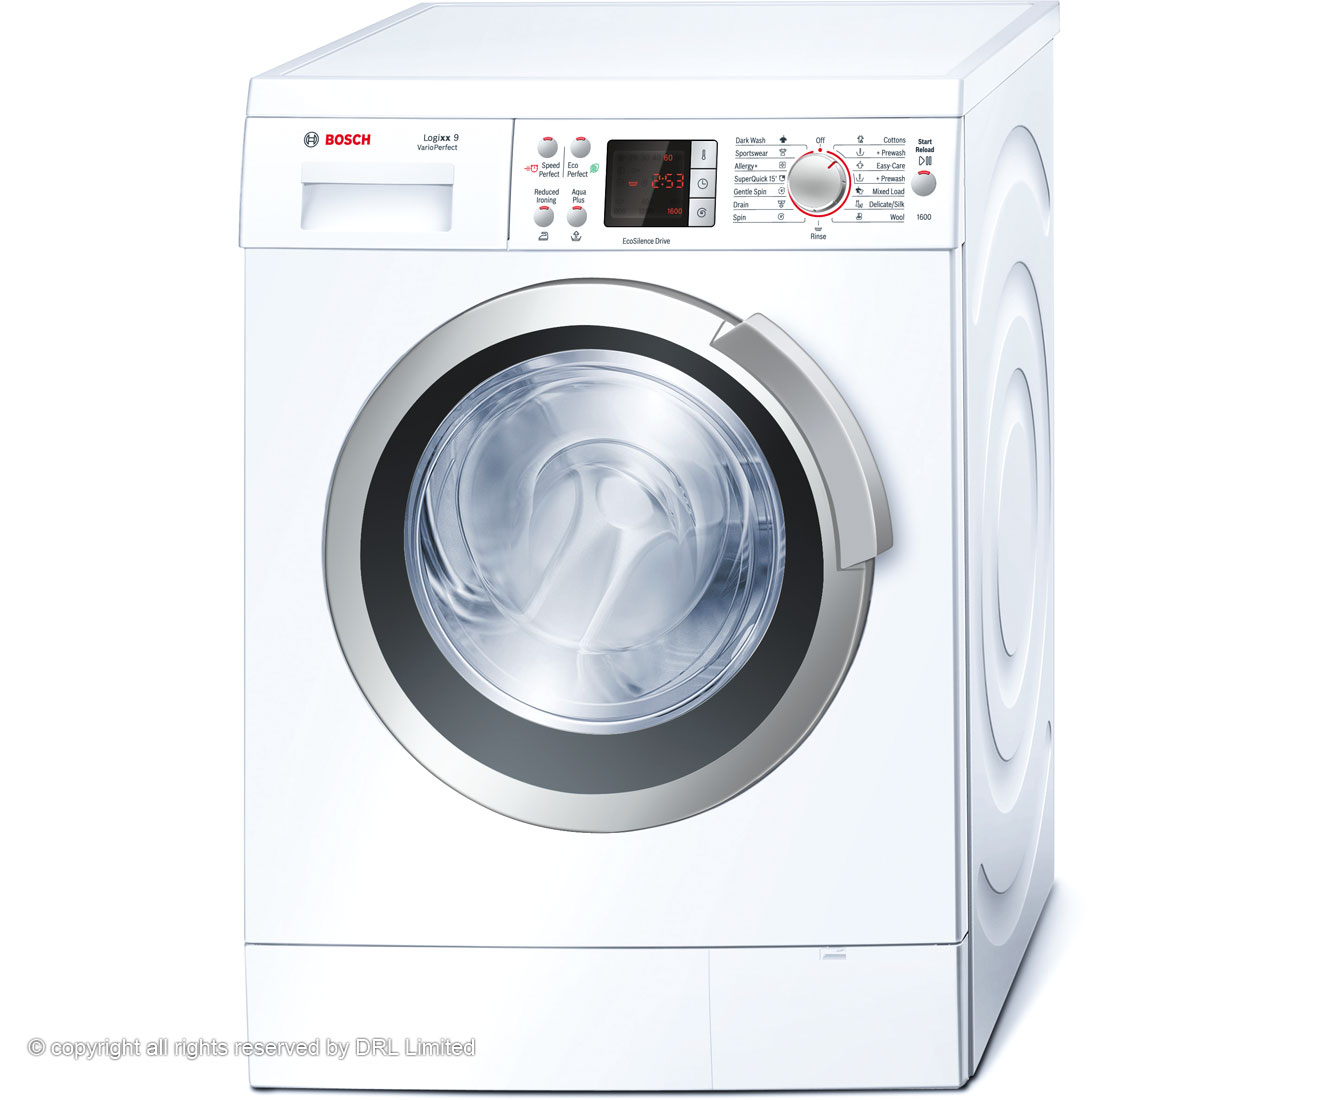 Bosch Logixx WAS32462GB 9Kg Washing Machine with 1600 rpm - White